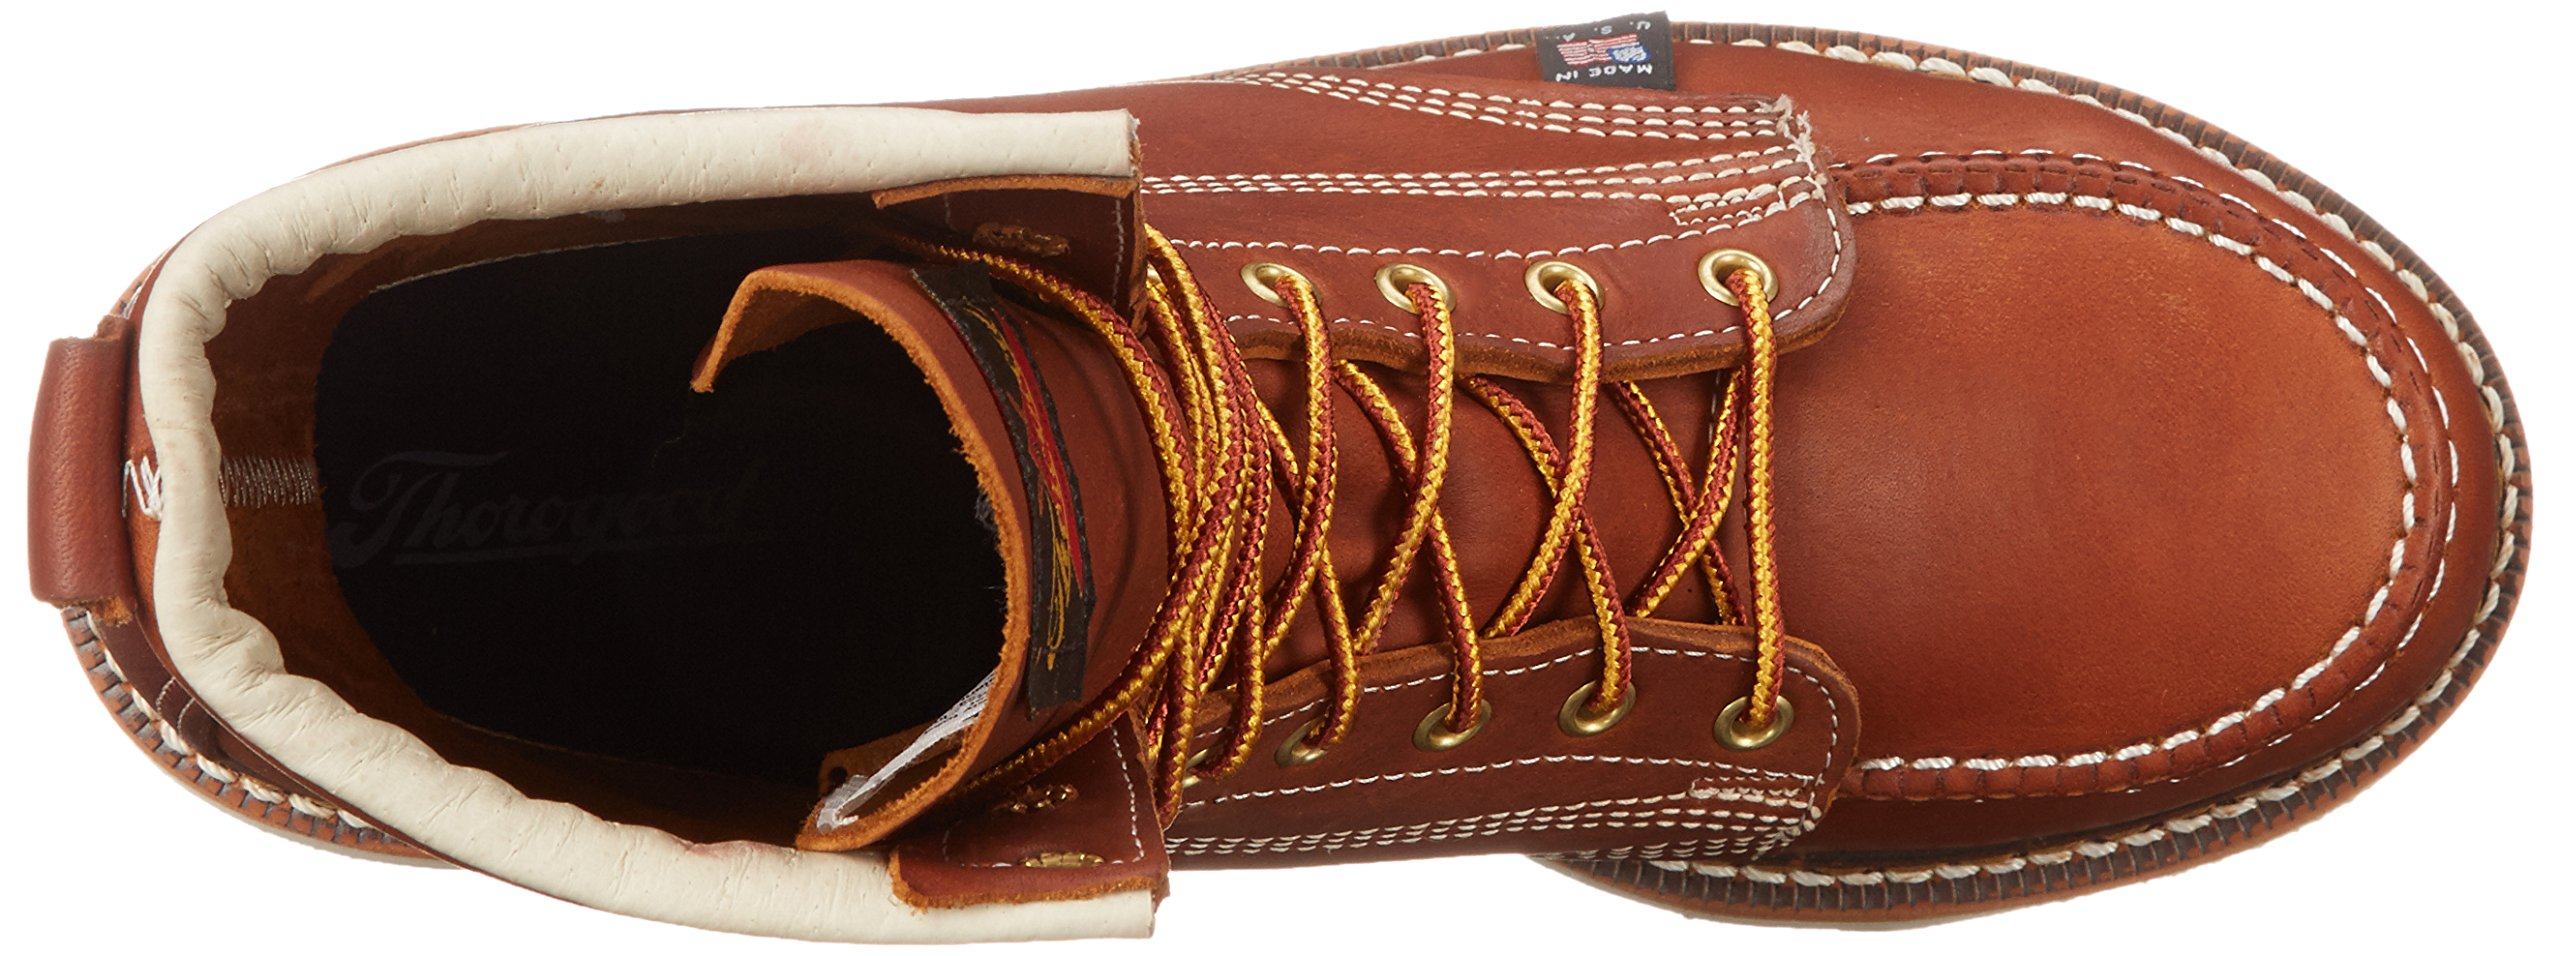 Thorogood Heritage 8'' Safety Toe Work Boot, Tobacco Oil Tanned, 10 EE US by Thorogood (Image #8)